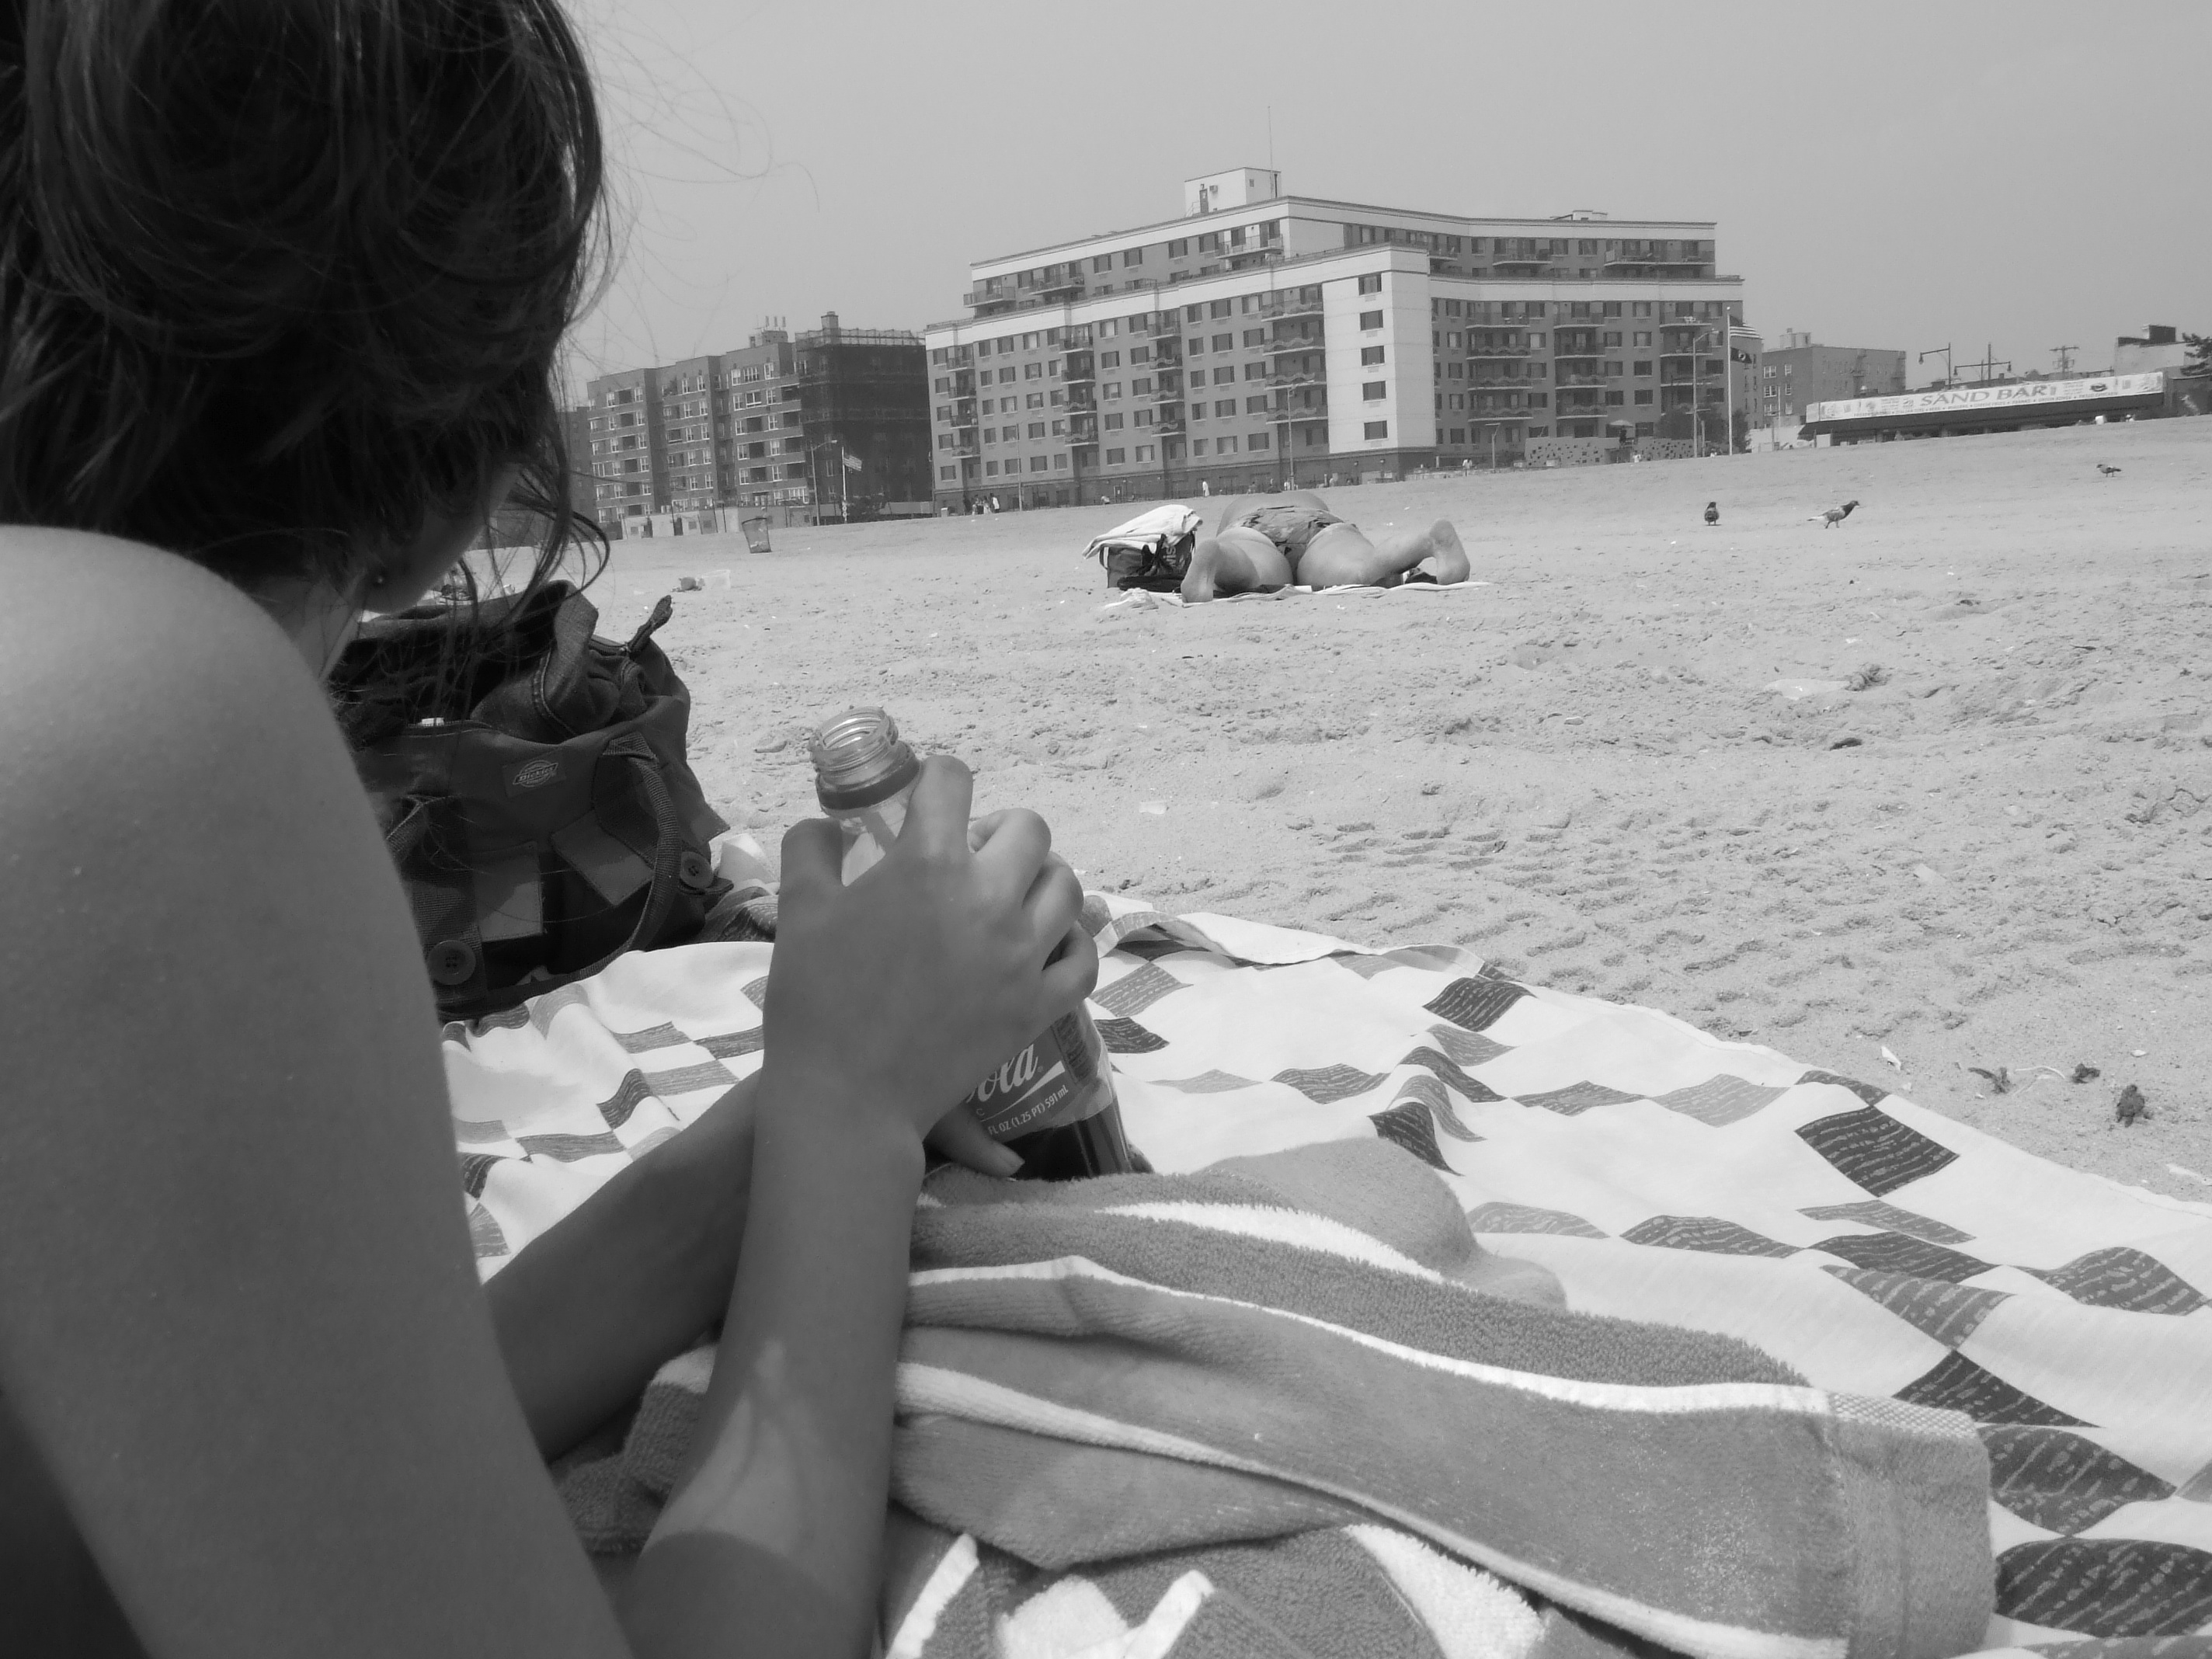 Day at the beach photo